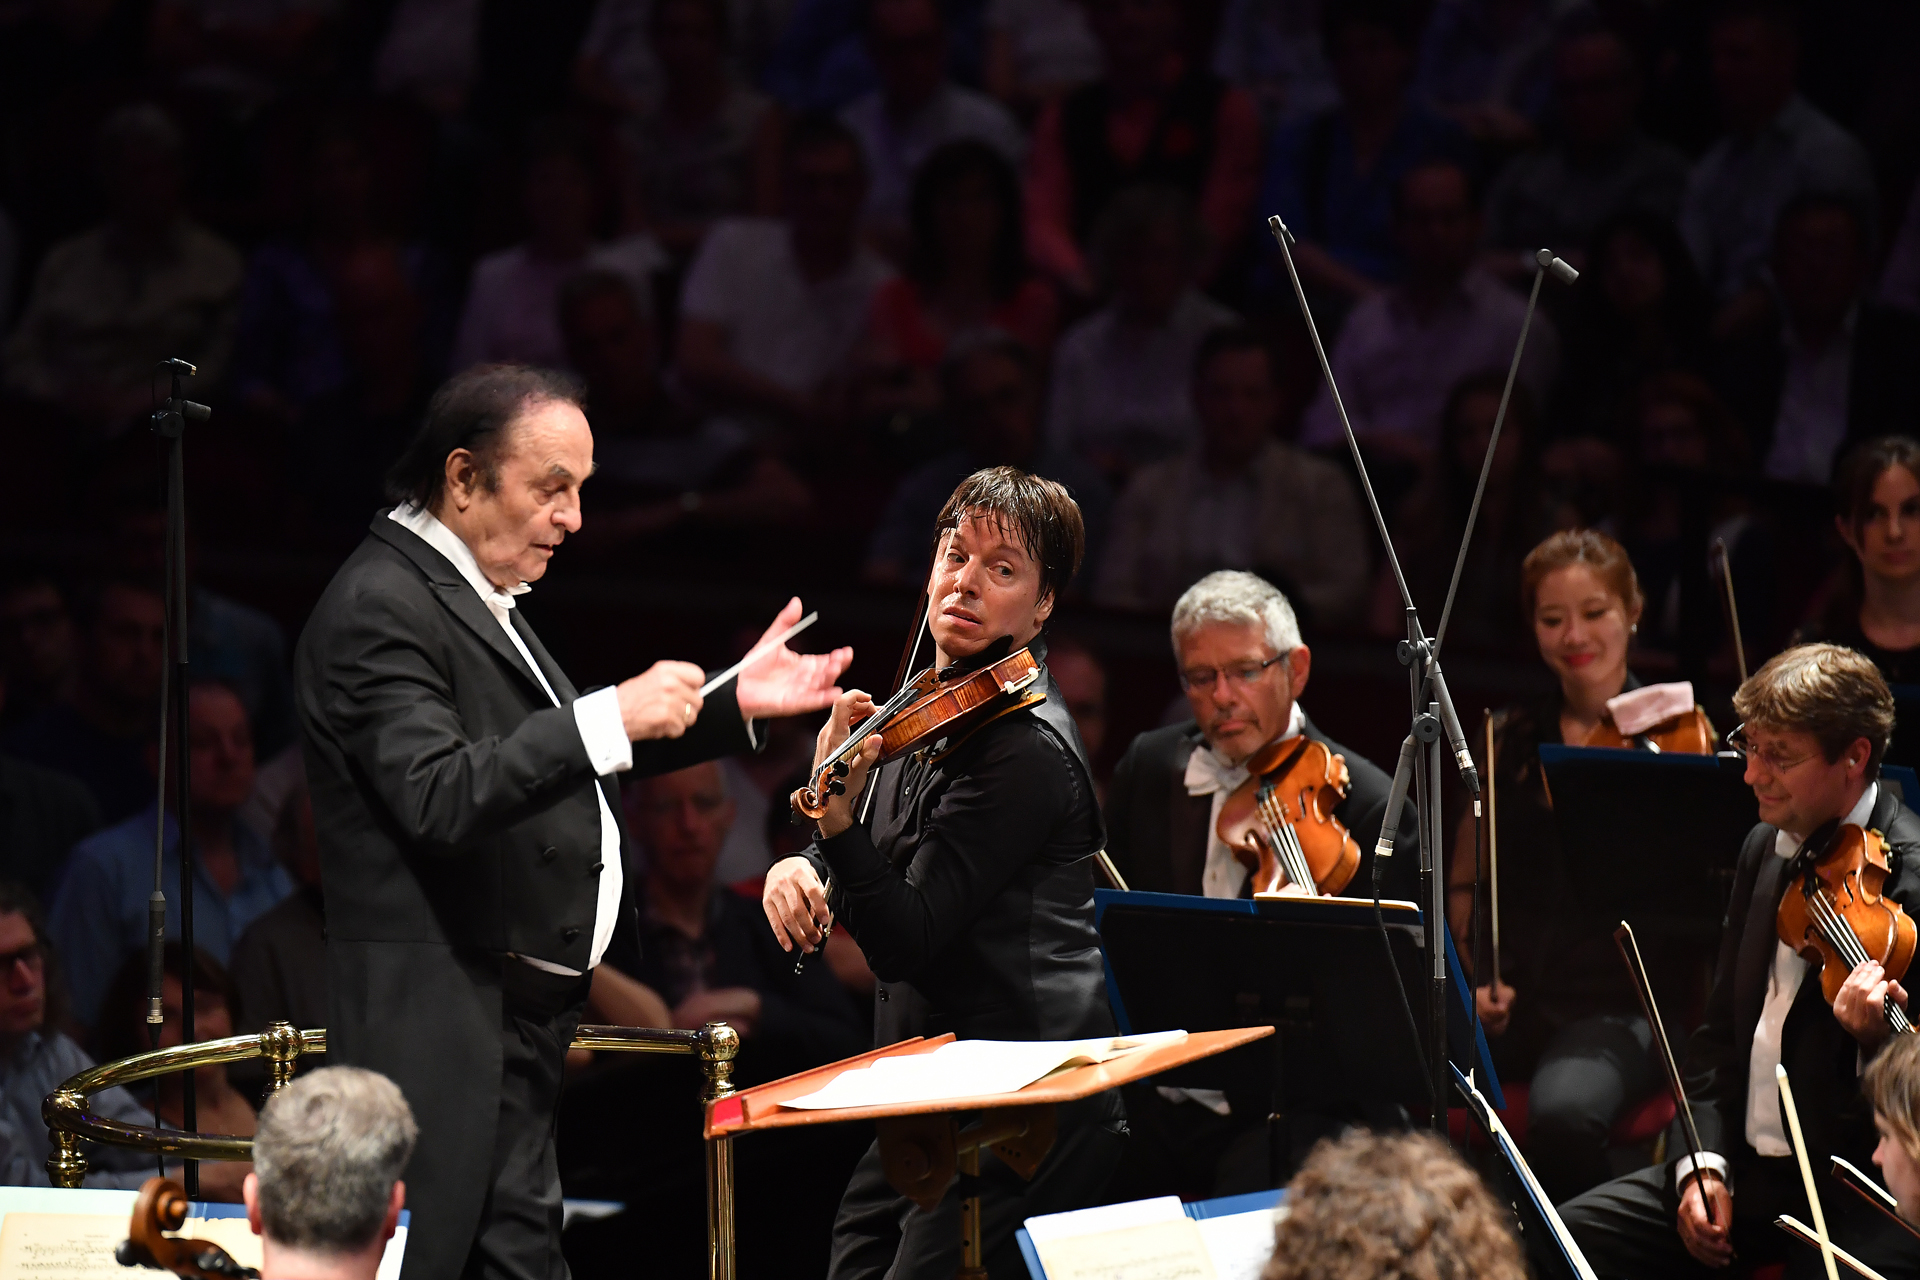 Violinist Joshua Bell performs Édouard Lalo's Symphonie espagnole, Op. 21 with the Royal Philharmonic Orchestra conducted by Charles Dutoit at the BBC Proms at the Royal Albert Hall.  Featuring: Joshua Bell, Charles Dutoit Where: London, United Kingdom When: 17 Aug 2017 Credit: BBC/Chris Christodoulou/Supplied by WENN.com  **WENN does not claim any ownership including but not limited to Copyright, License in attached material. Fees charged by WENN are for WENN's services only, do not, nor are they intended to, convey to the user any ownership of Copyright, License in material. By publishing this material you expressly agree to indemnify, to hold WENN, its directors, shareholders, employees harmless from any loss, claims, damages, demands, expenses (including legal fees), any causes of action, allegation against WENN arising out of, connected in any way with publication of the material.**